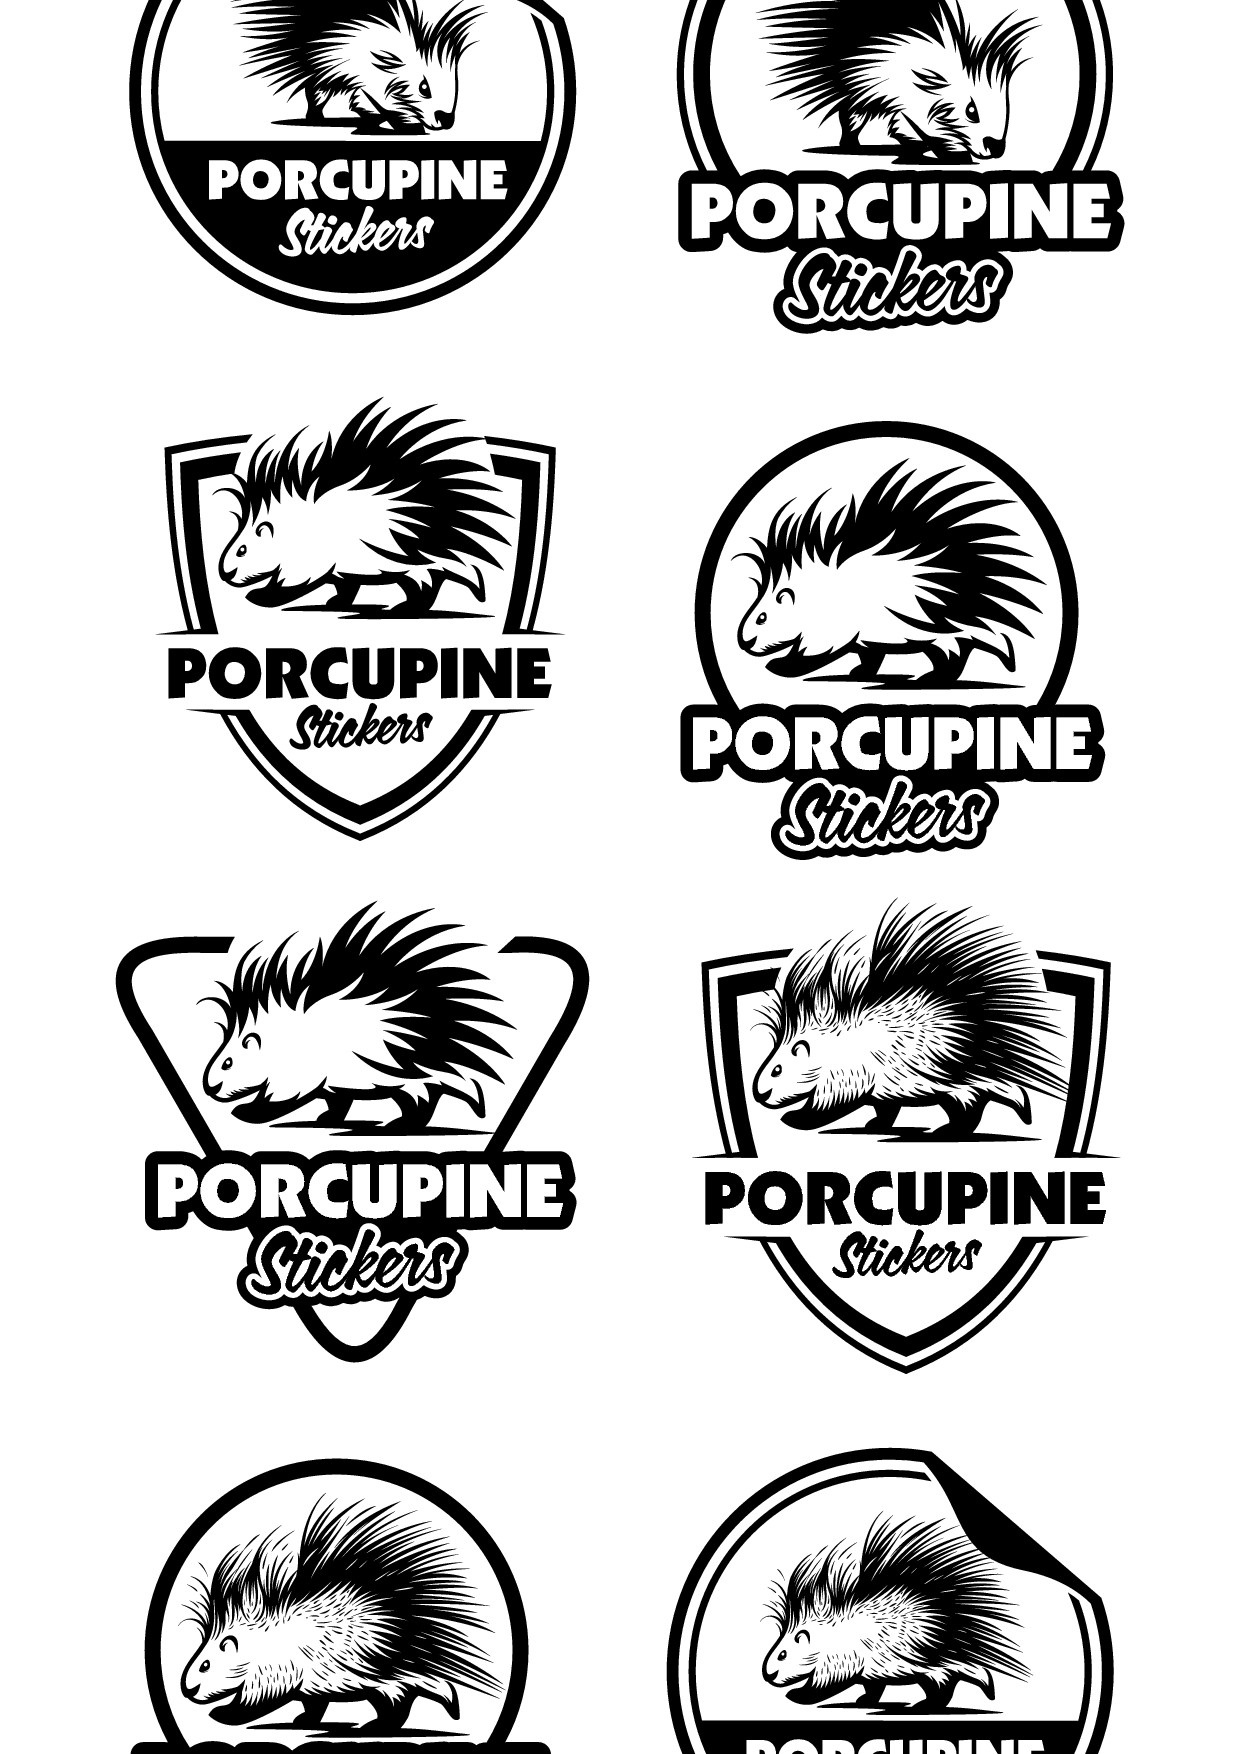 Porcupine Stickers - Professional,  logo  needed for sticker/decal shop.